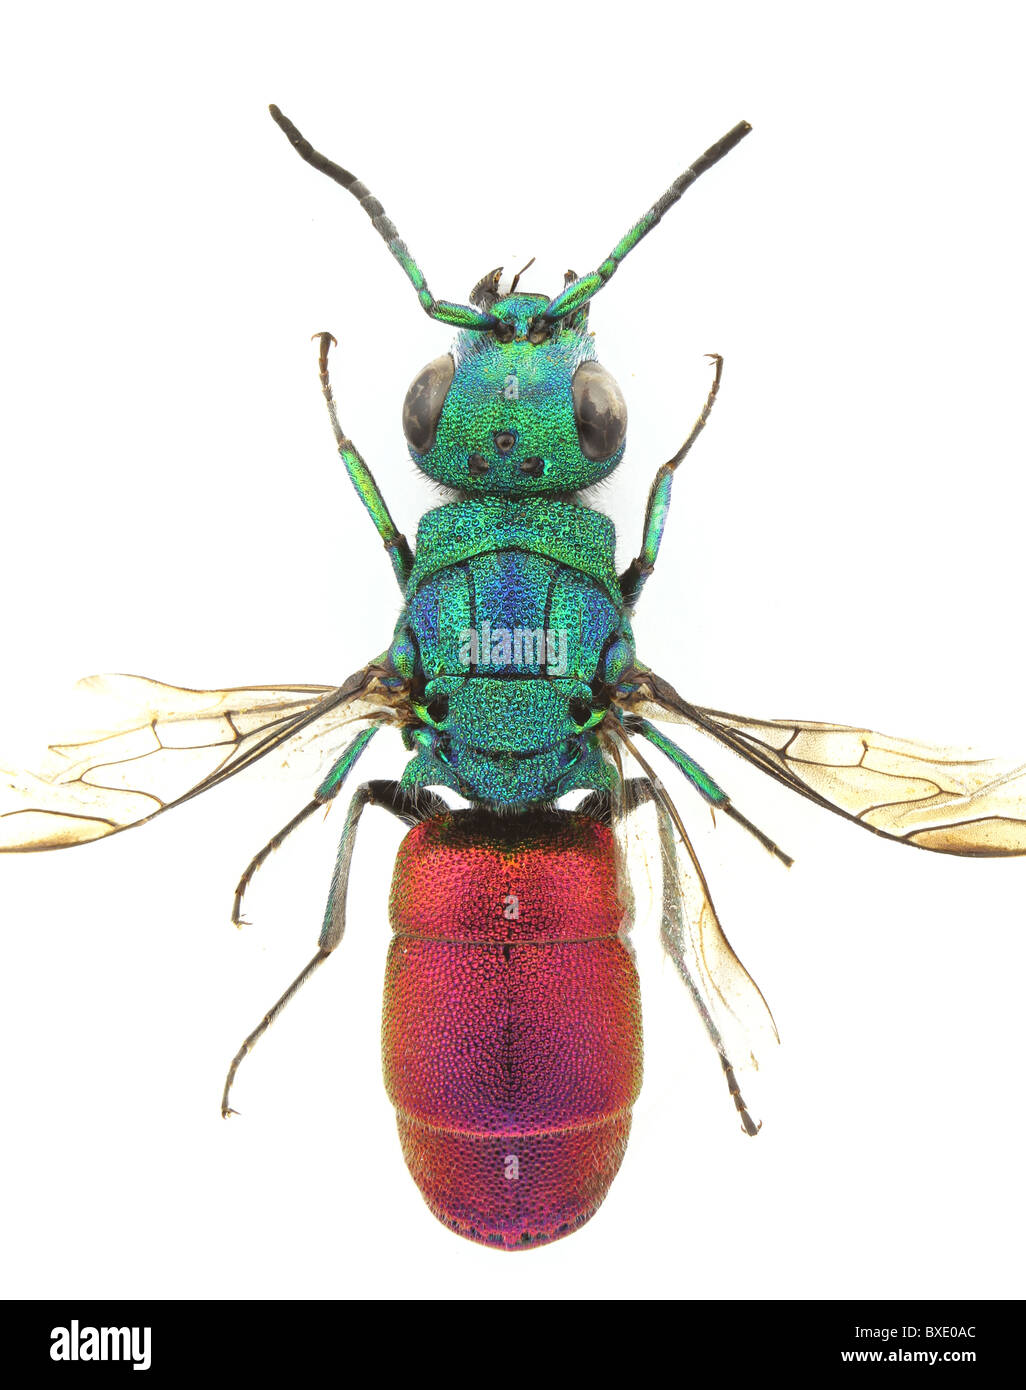 Chrysura refulgens (Cucko Wasp, jewel wasp) isolated on a white background. - Stock Image